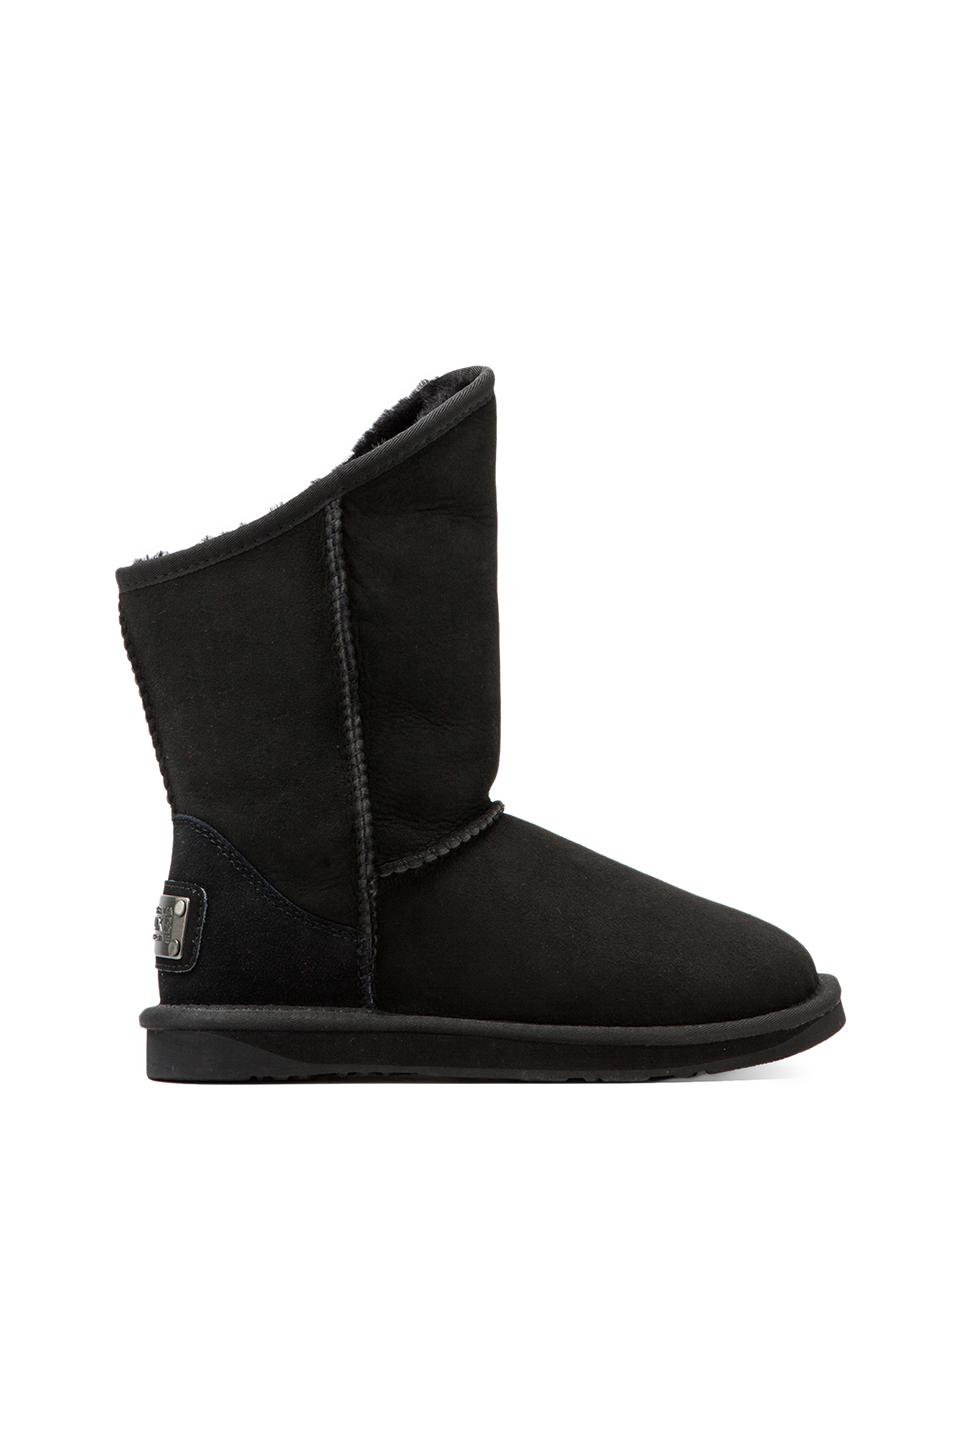 Australia Luxe Collective Cosy Short Boot with Sheep Shearling in Black